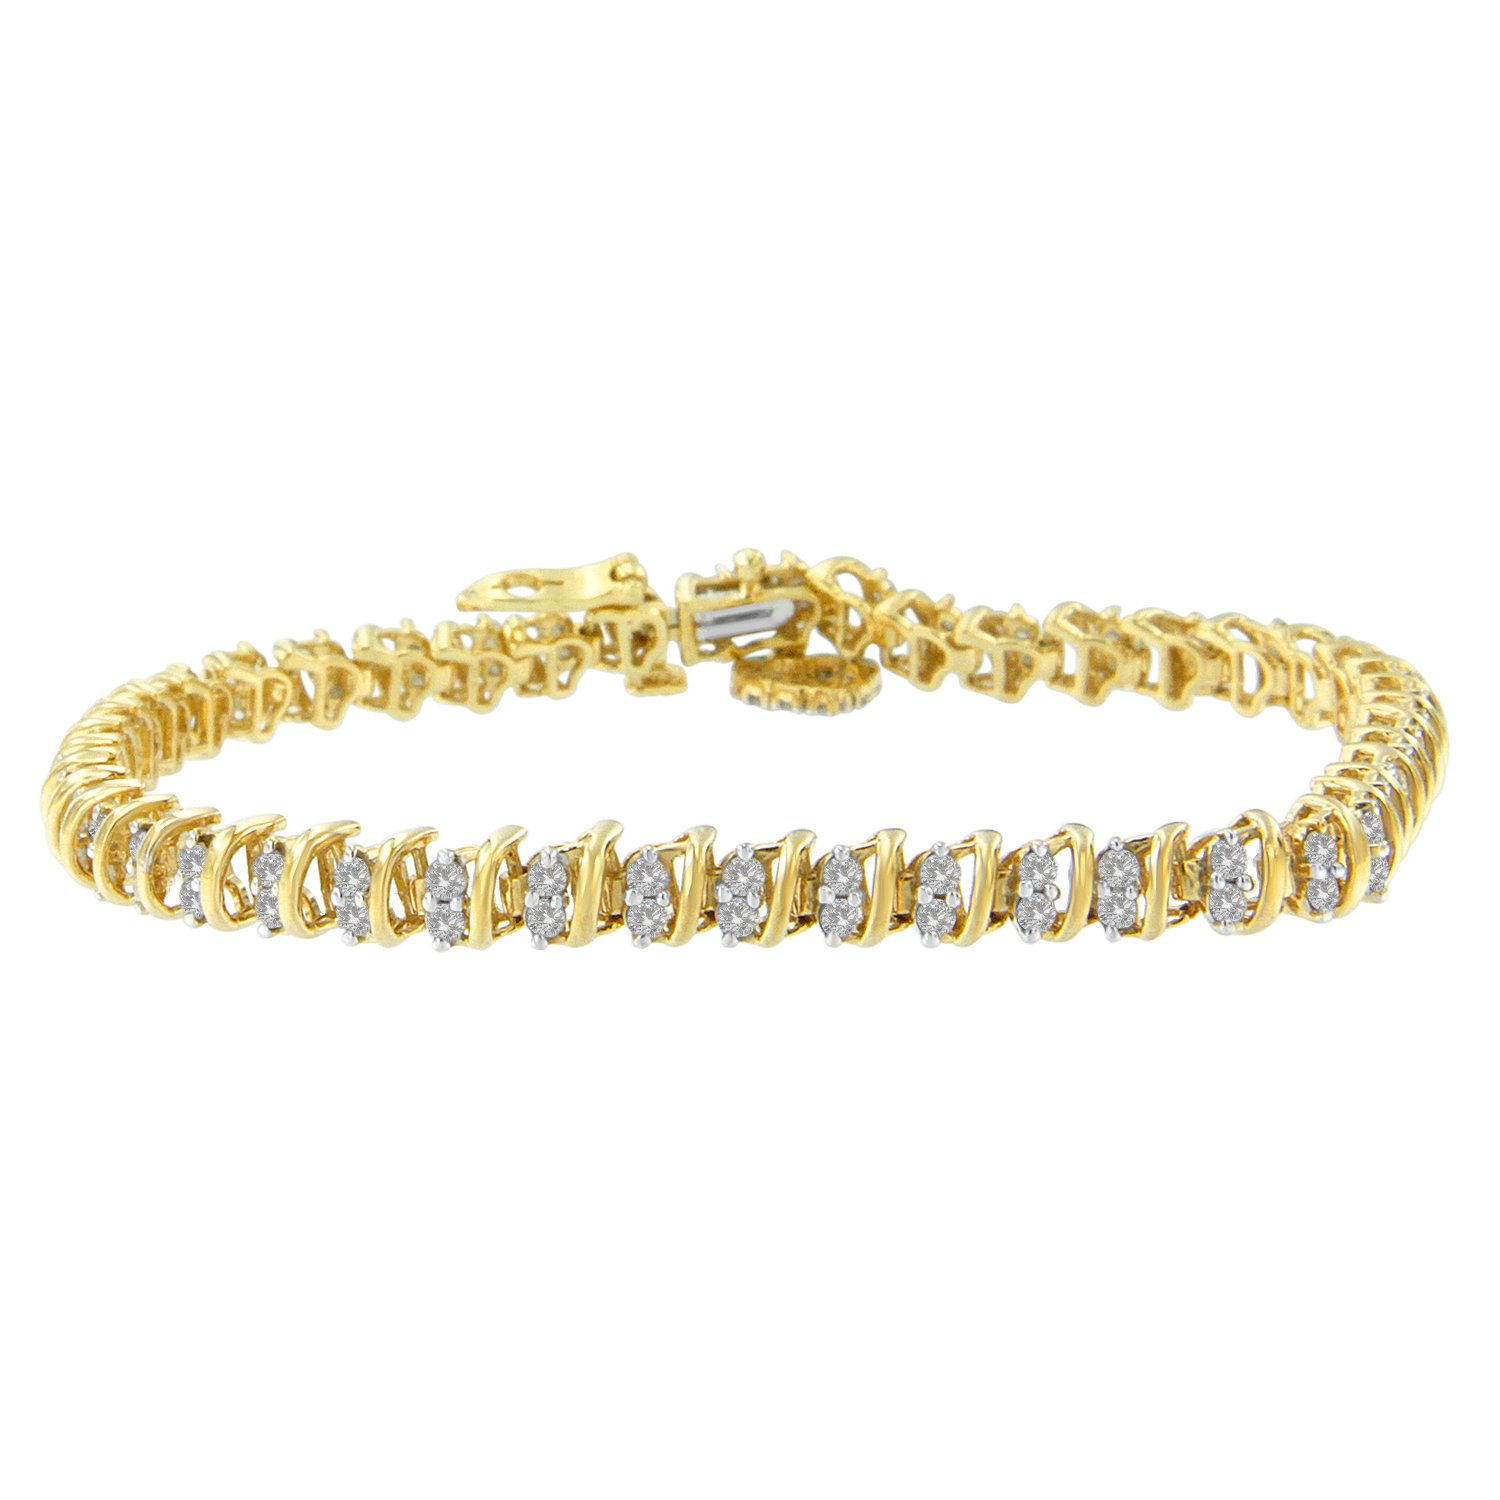 10K Yellow Gold Plated Sterling Silver Round Curved Link Tennis Bracelet(2.00cttw, H-I color, I3 clarity)